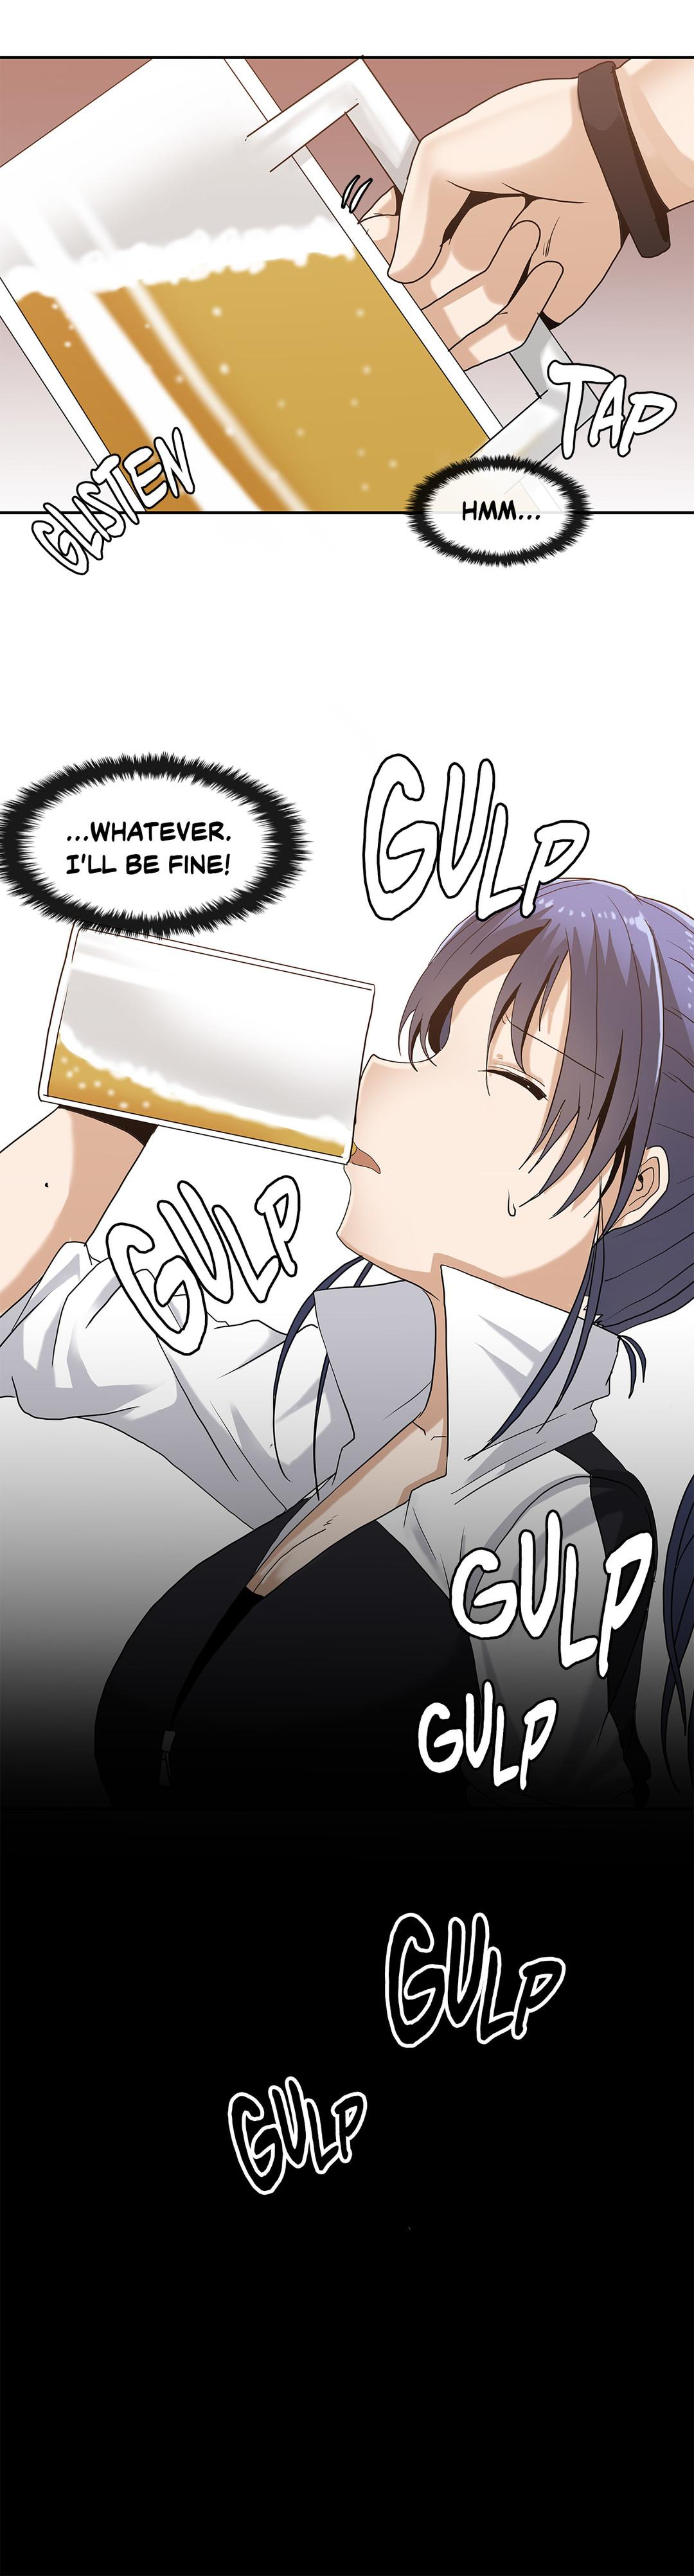 The Girl That Wet the Wall Ch. 0-2 78